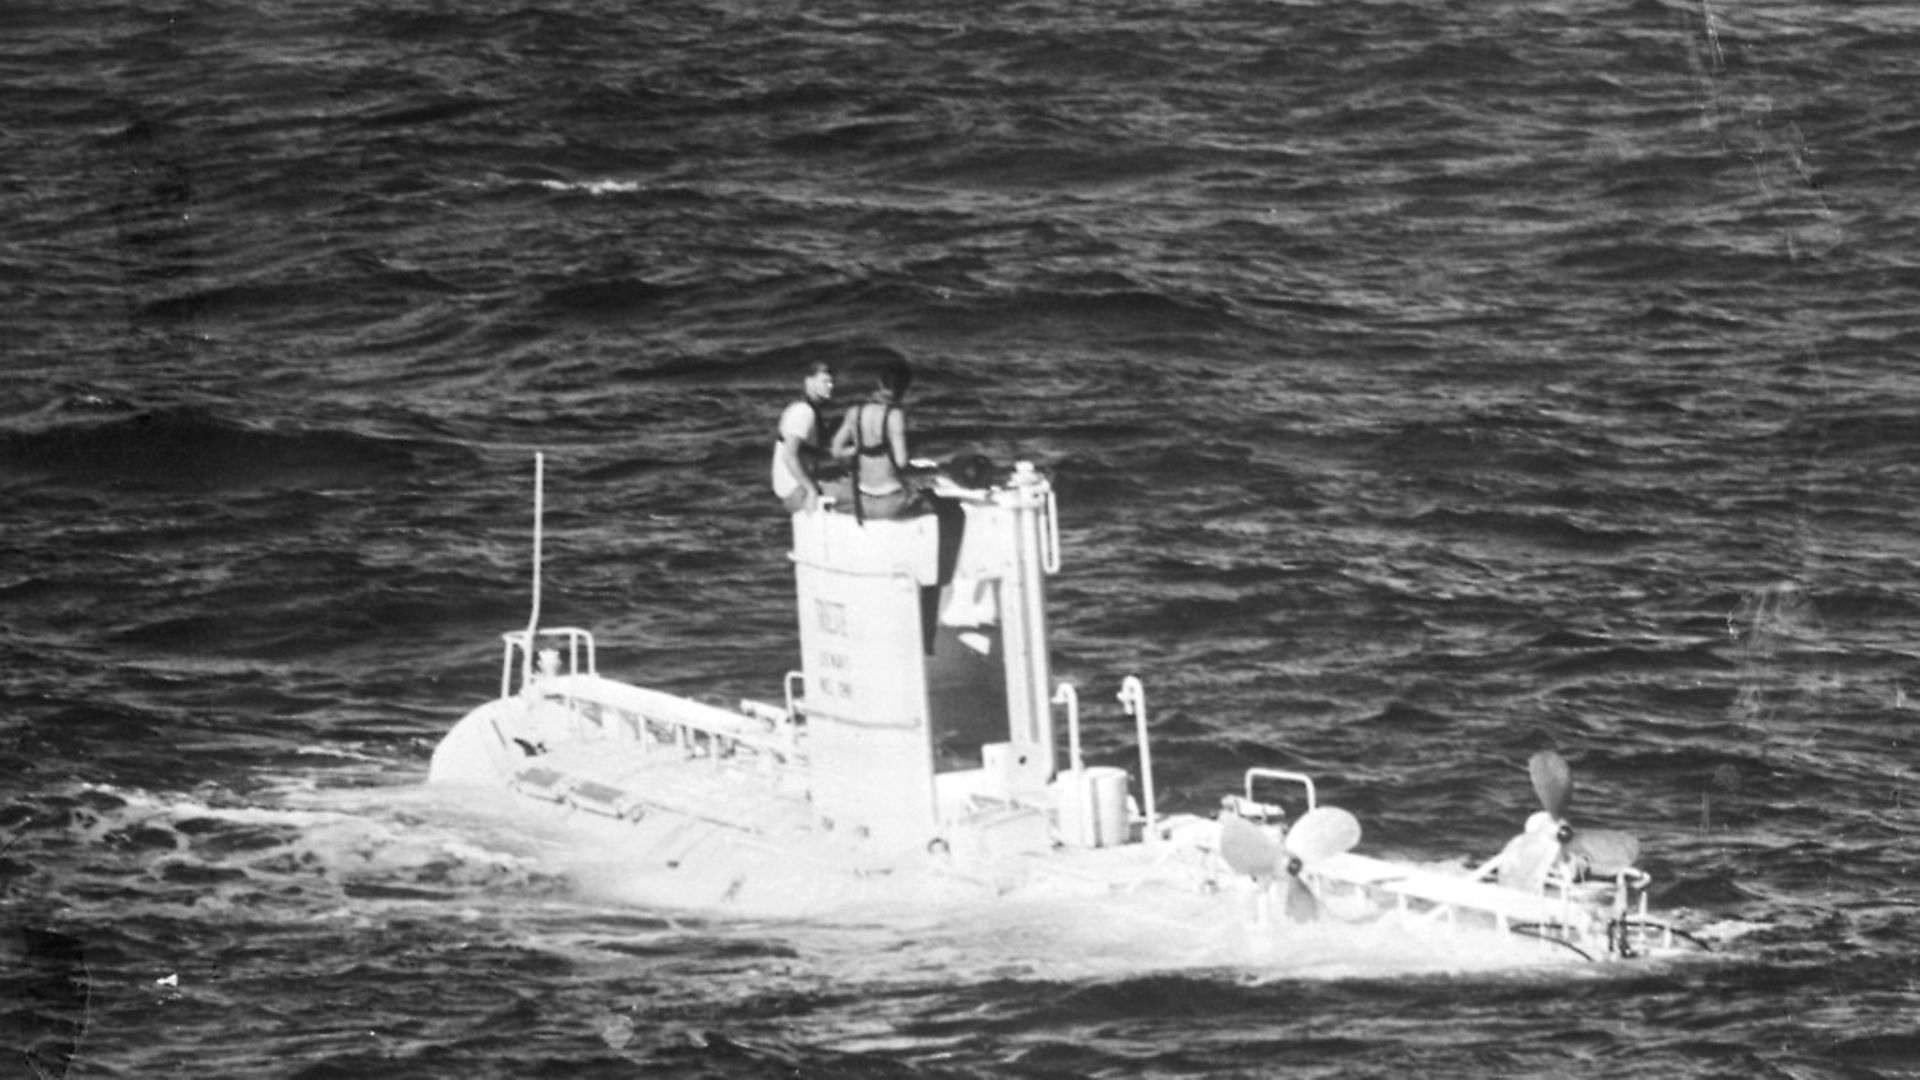 The US Navy's bathyscaphe Trieste rides on the surface of the Pacific Ocean near here, Nov. 17th, after descending to a record depth of 18,600 feet in the Marianas Trench. Credit: Bettmann Archive